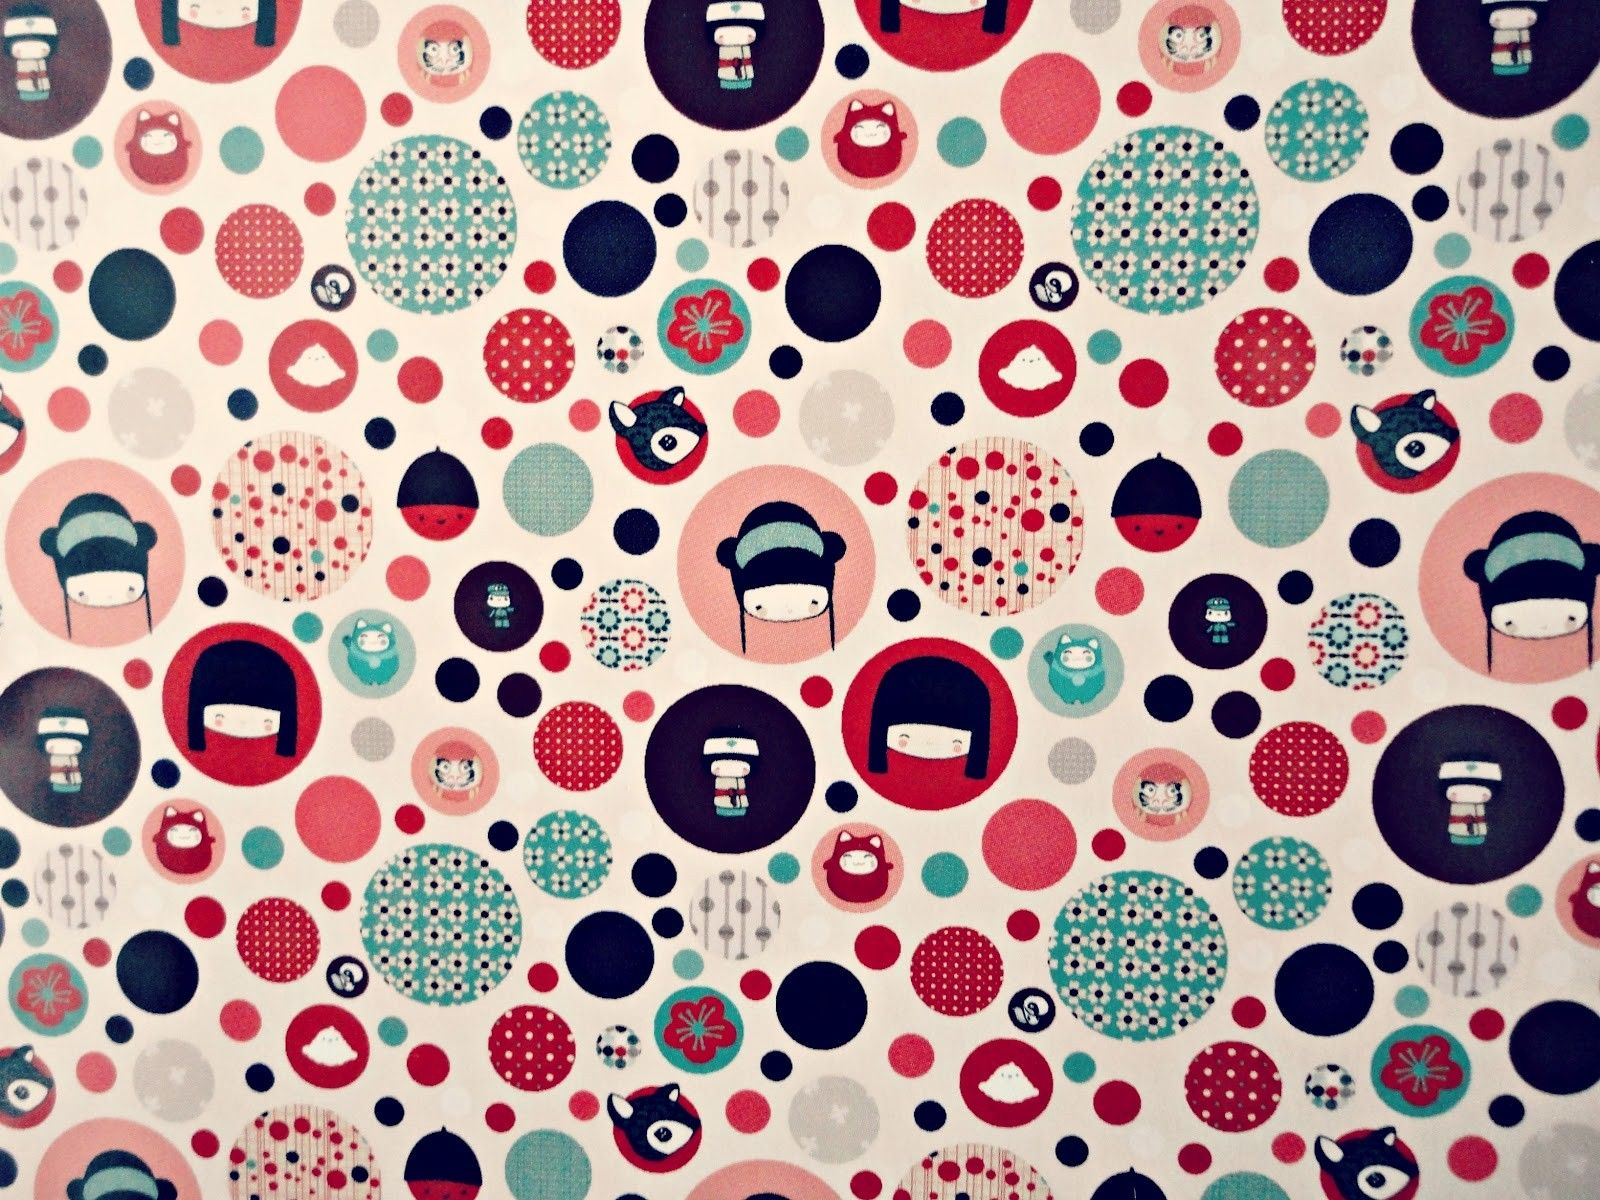 explore cute wallpaper backgrounds and more patterns tumblr